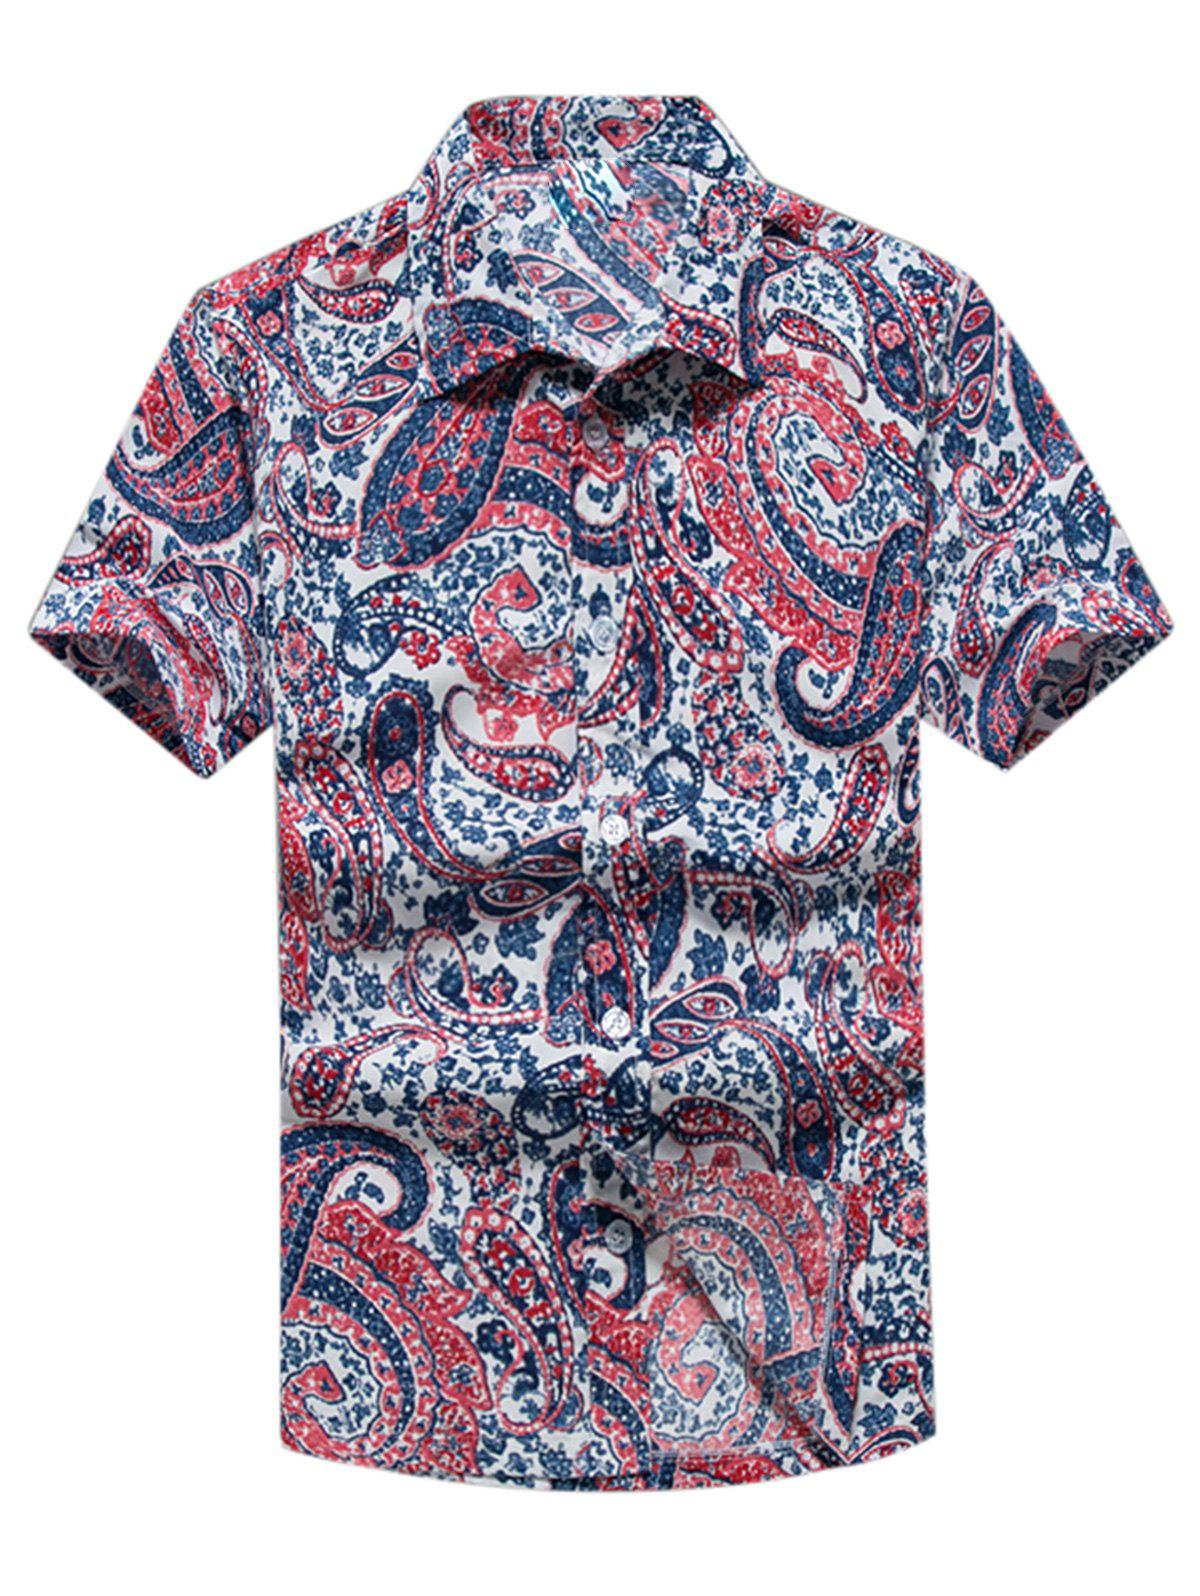 Casual Paisley Print Short Sleeve Shirt - RED 2XL